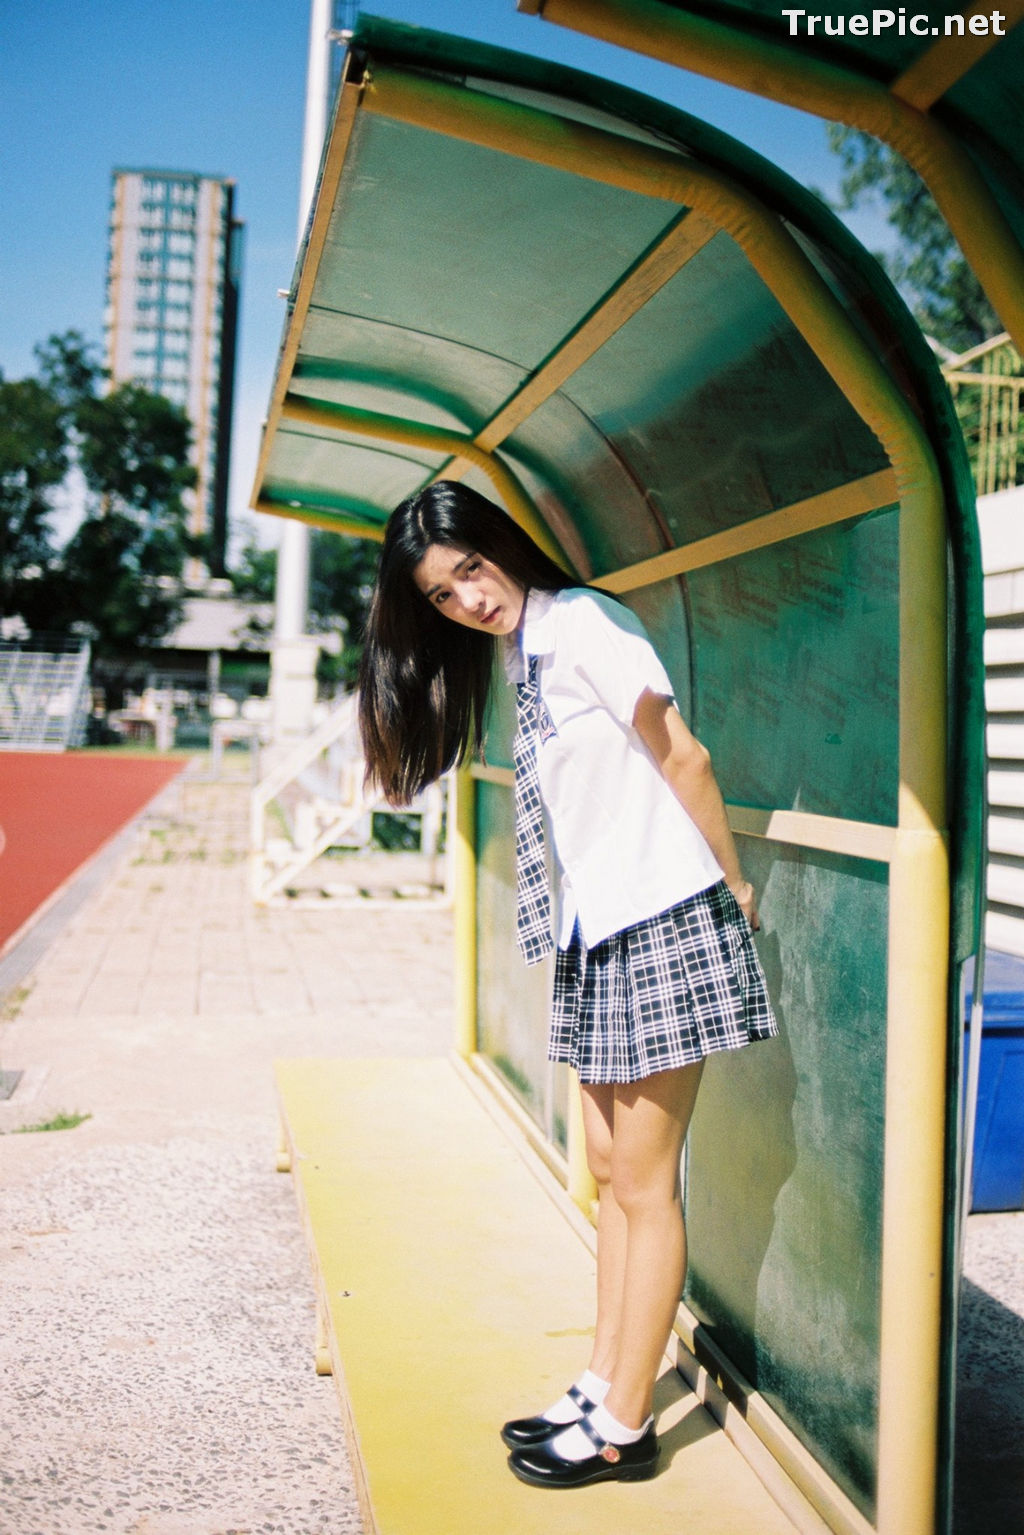 Image Thailand Cute Model - Bebey - Back To School - TruePic.net - Picture-2